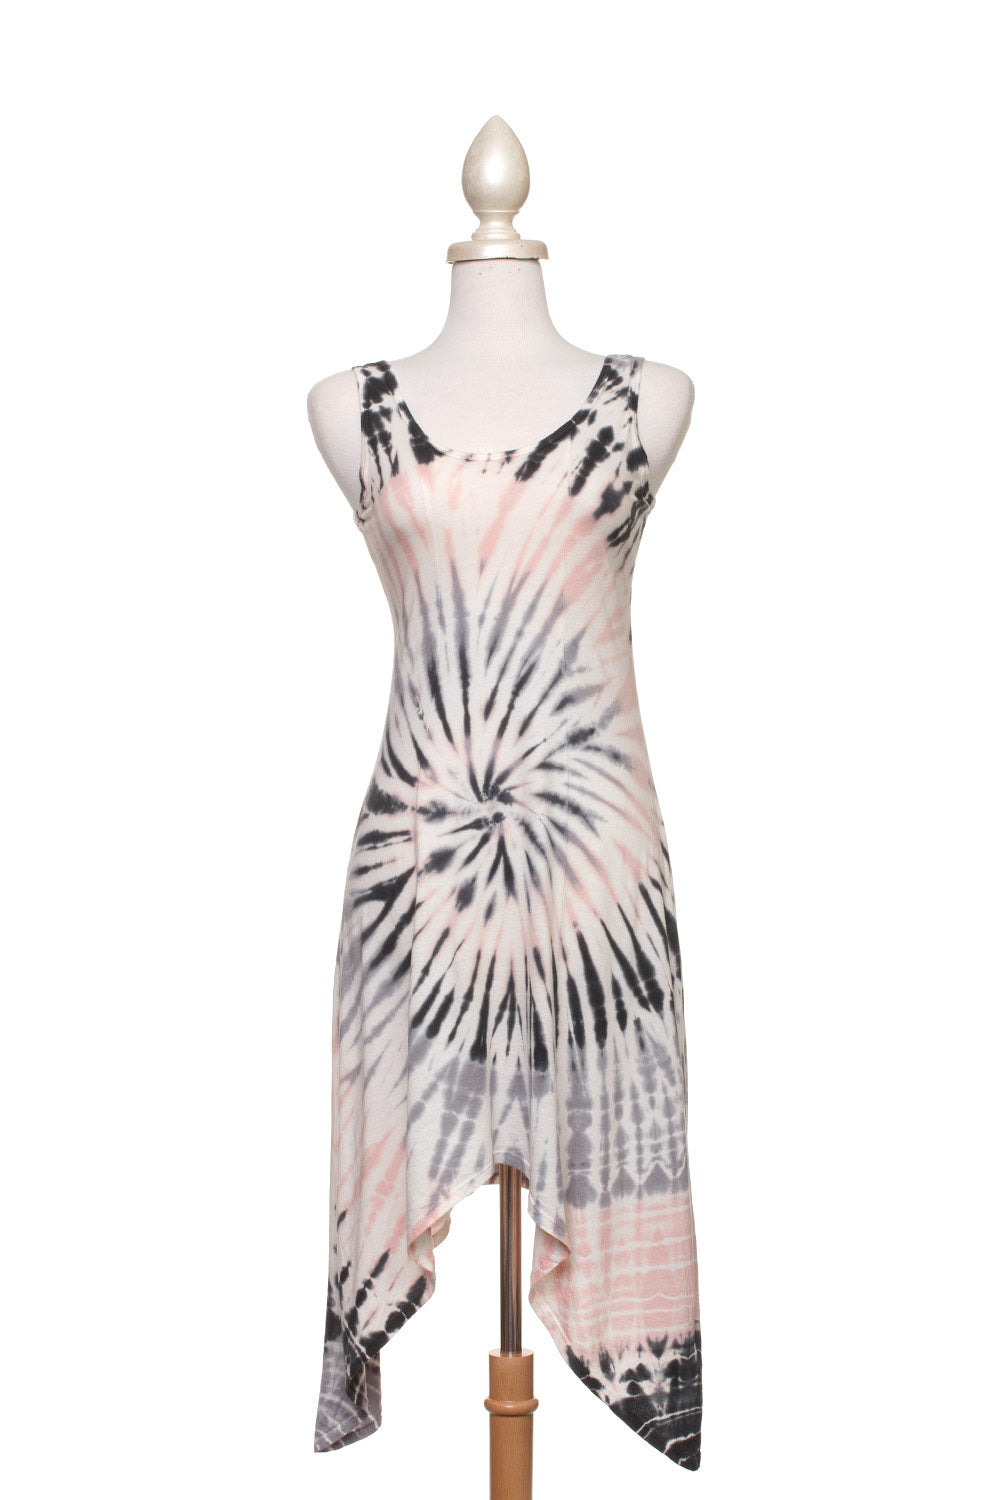 Type 2 Tender Tie-Dye Dress